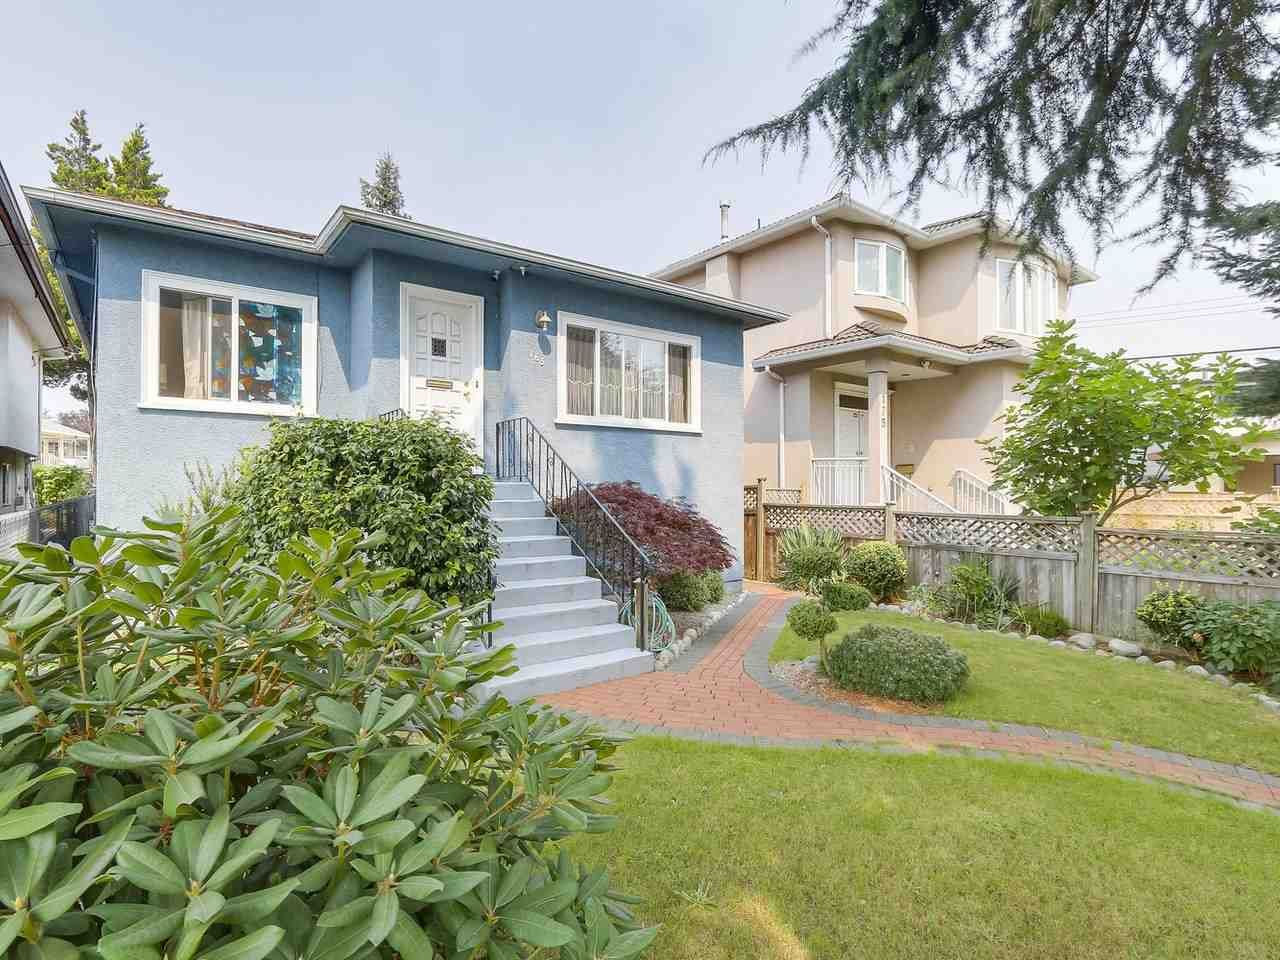 Photo 2: Photos: 165 E 55TH AVENUE in Vancouver: South Vancouver House for sale (Vancouver East)  : MLS®# R2297472